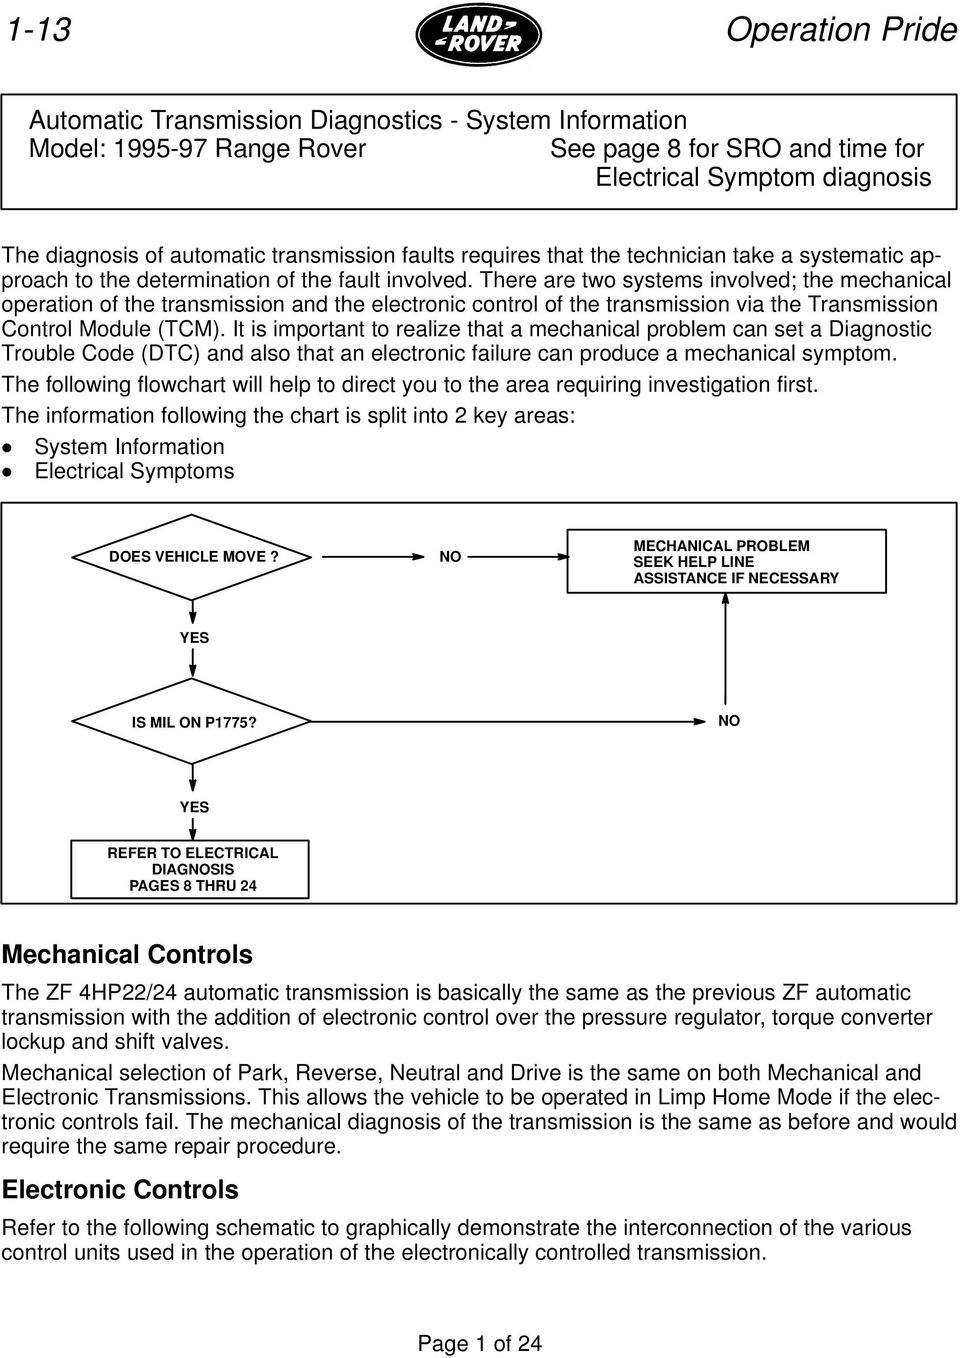 Range Rover Automatic Transmission System Information Document Pdf 1997 Wiring Diagram There Are Two Systems Involved The Mechanical Operation Of And Electronic Control